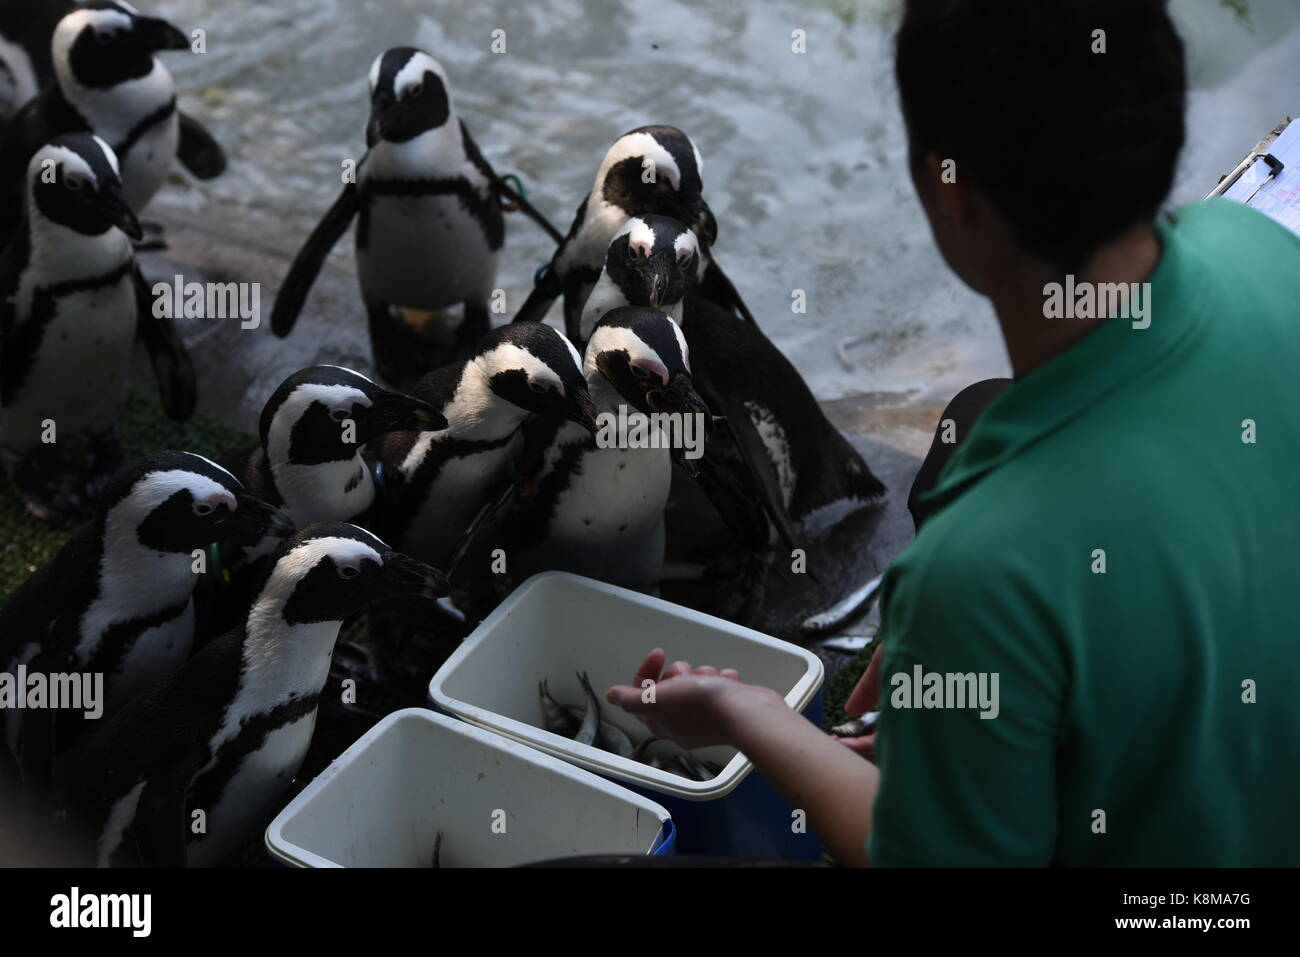 Madrid, Spain. 19th Sep, 2017. African penguins queueing to eat at Madrid zoo. Credit: Jorge Sanz/Pacific Press/Alamy Live News Stock Photo